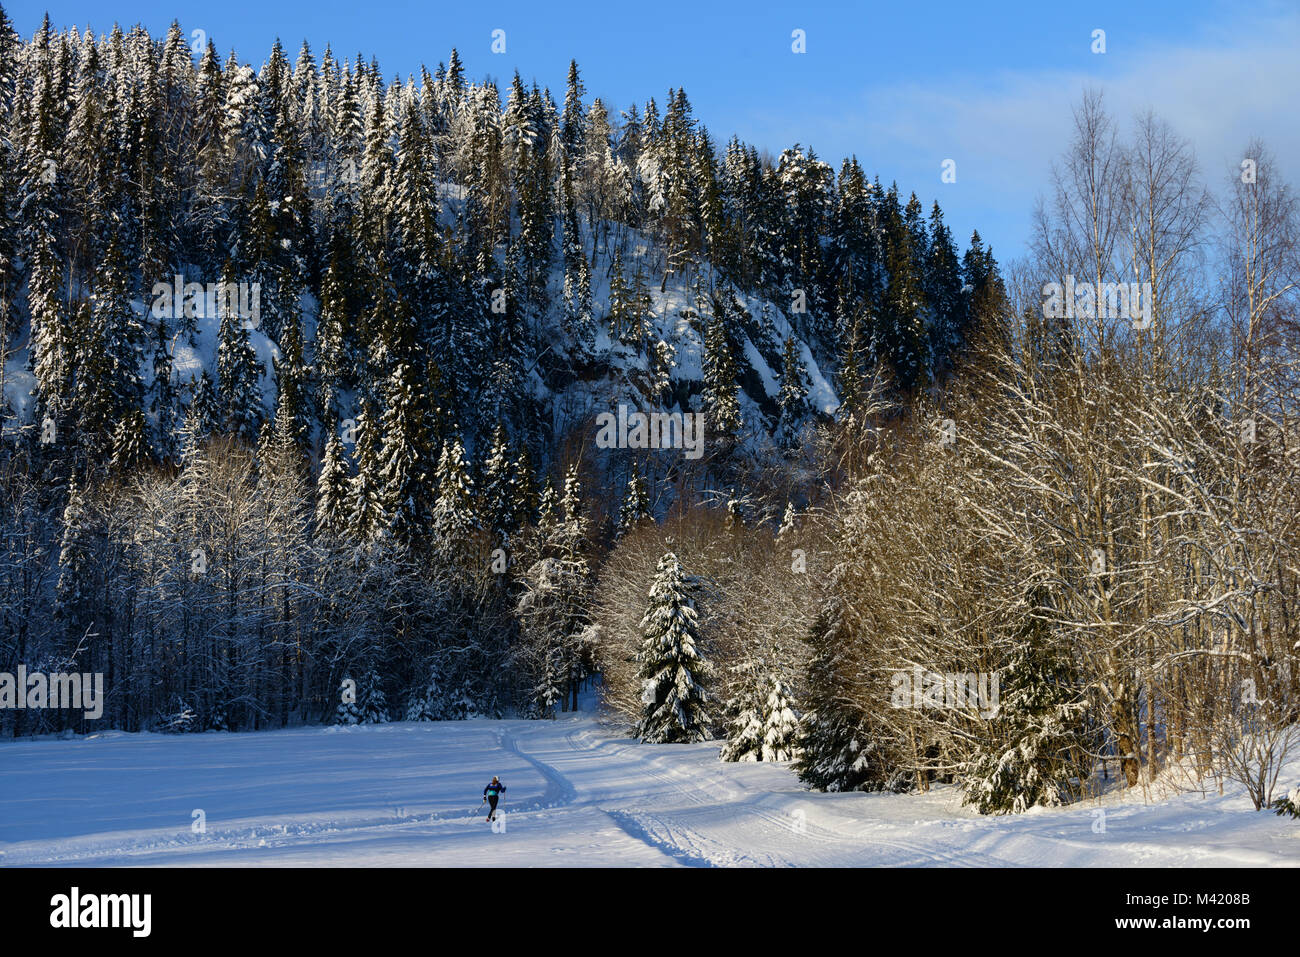 Its still early on this beautiful morning as the sun starts to drive away the shadows and this skier heads out into Stock Photo